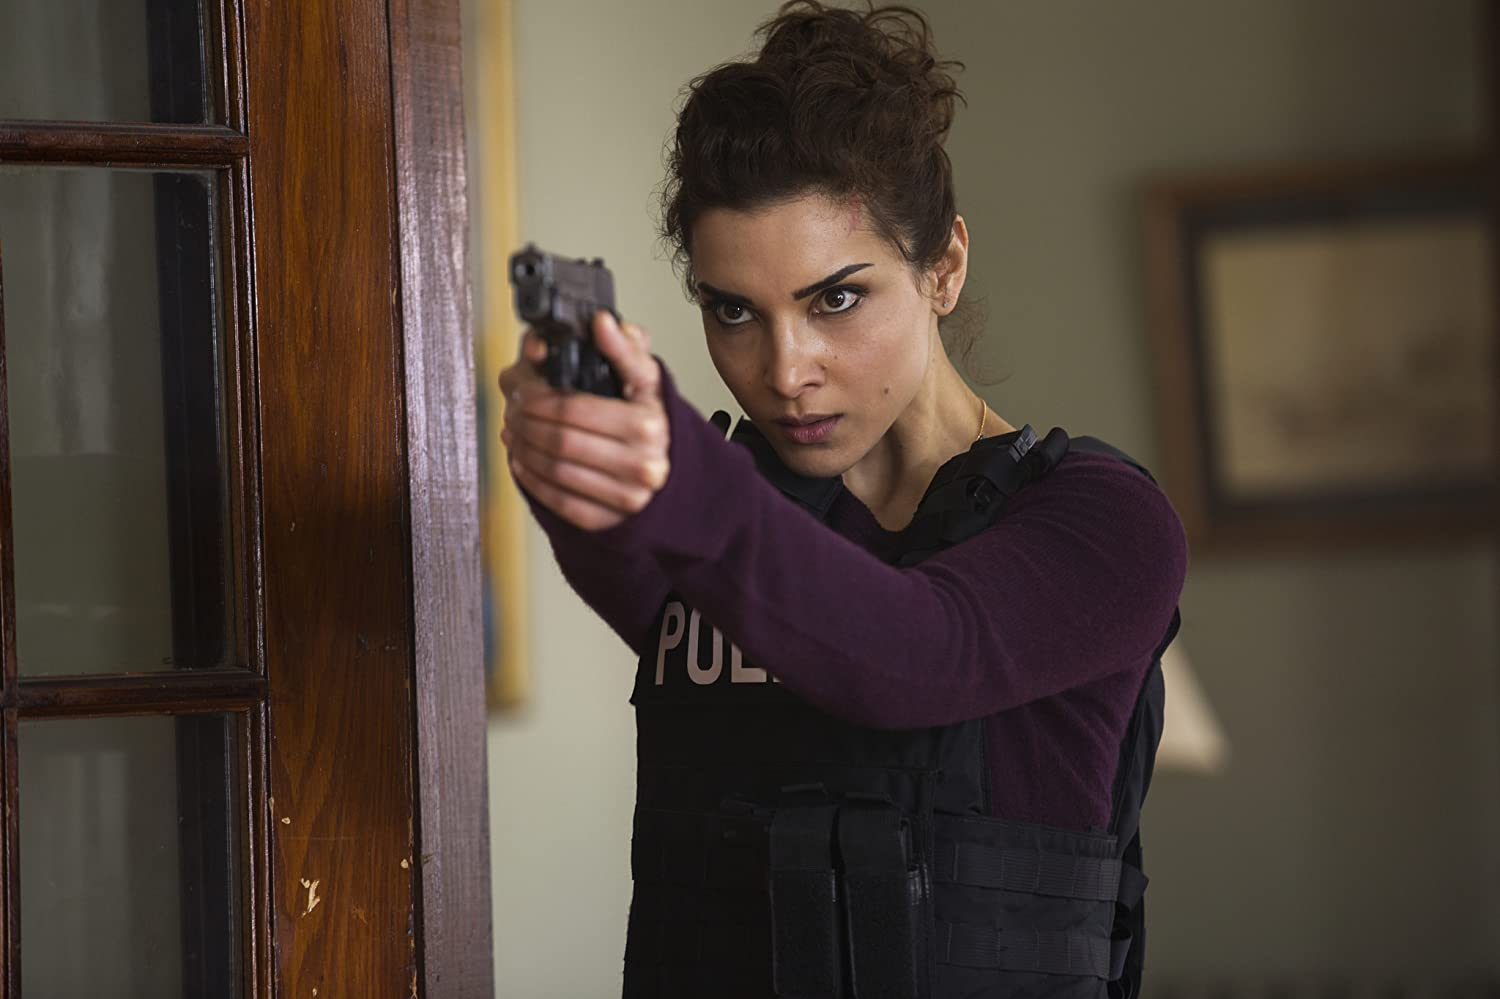 Amber Rose Revah in The Punisher (2017)